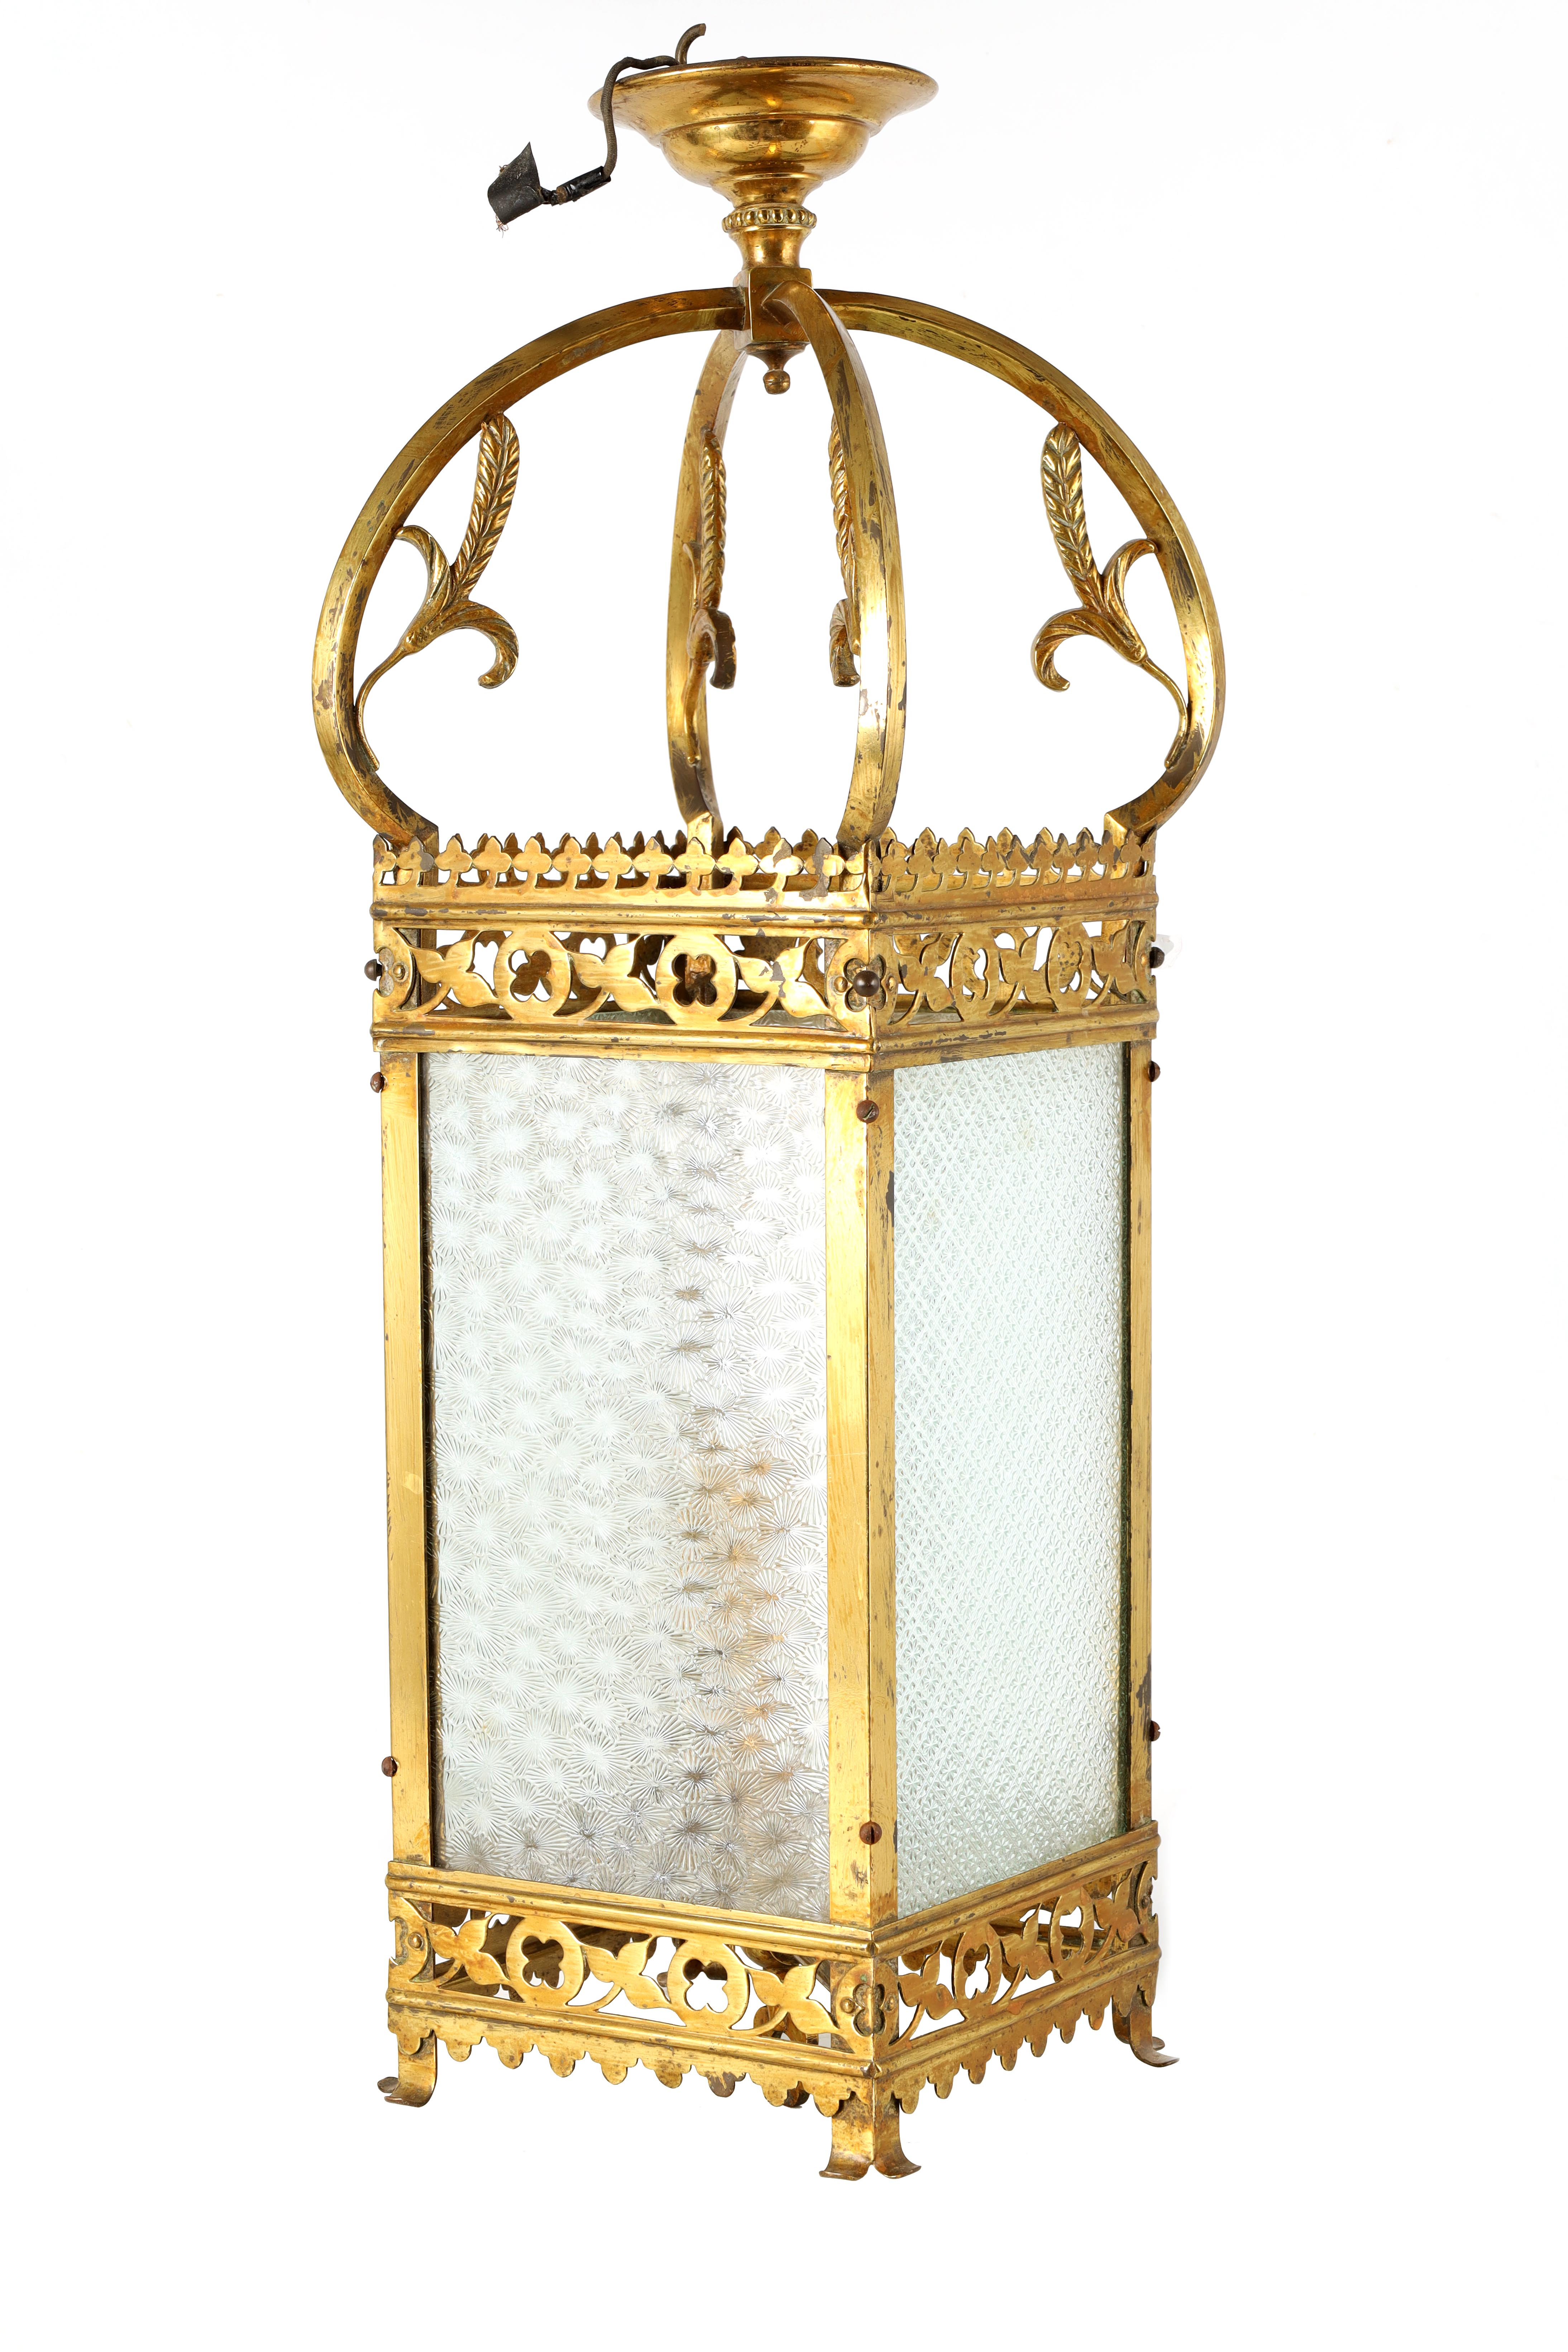 AN EARLY 20TH CENTURY LACQUERED BRASS HALL LANTERN having cabriolet shaped supports with leaf work